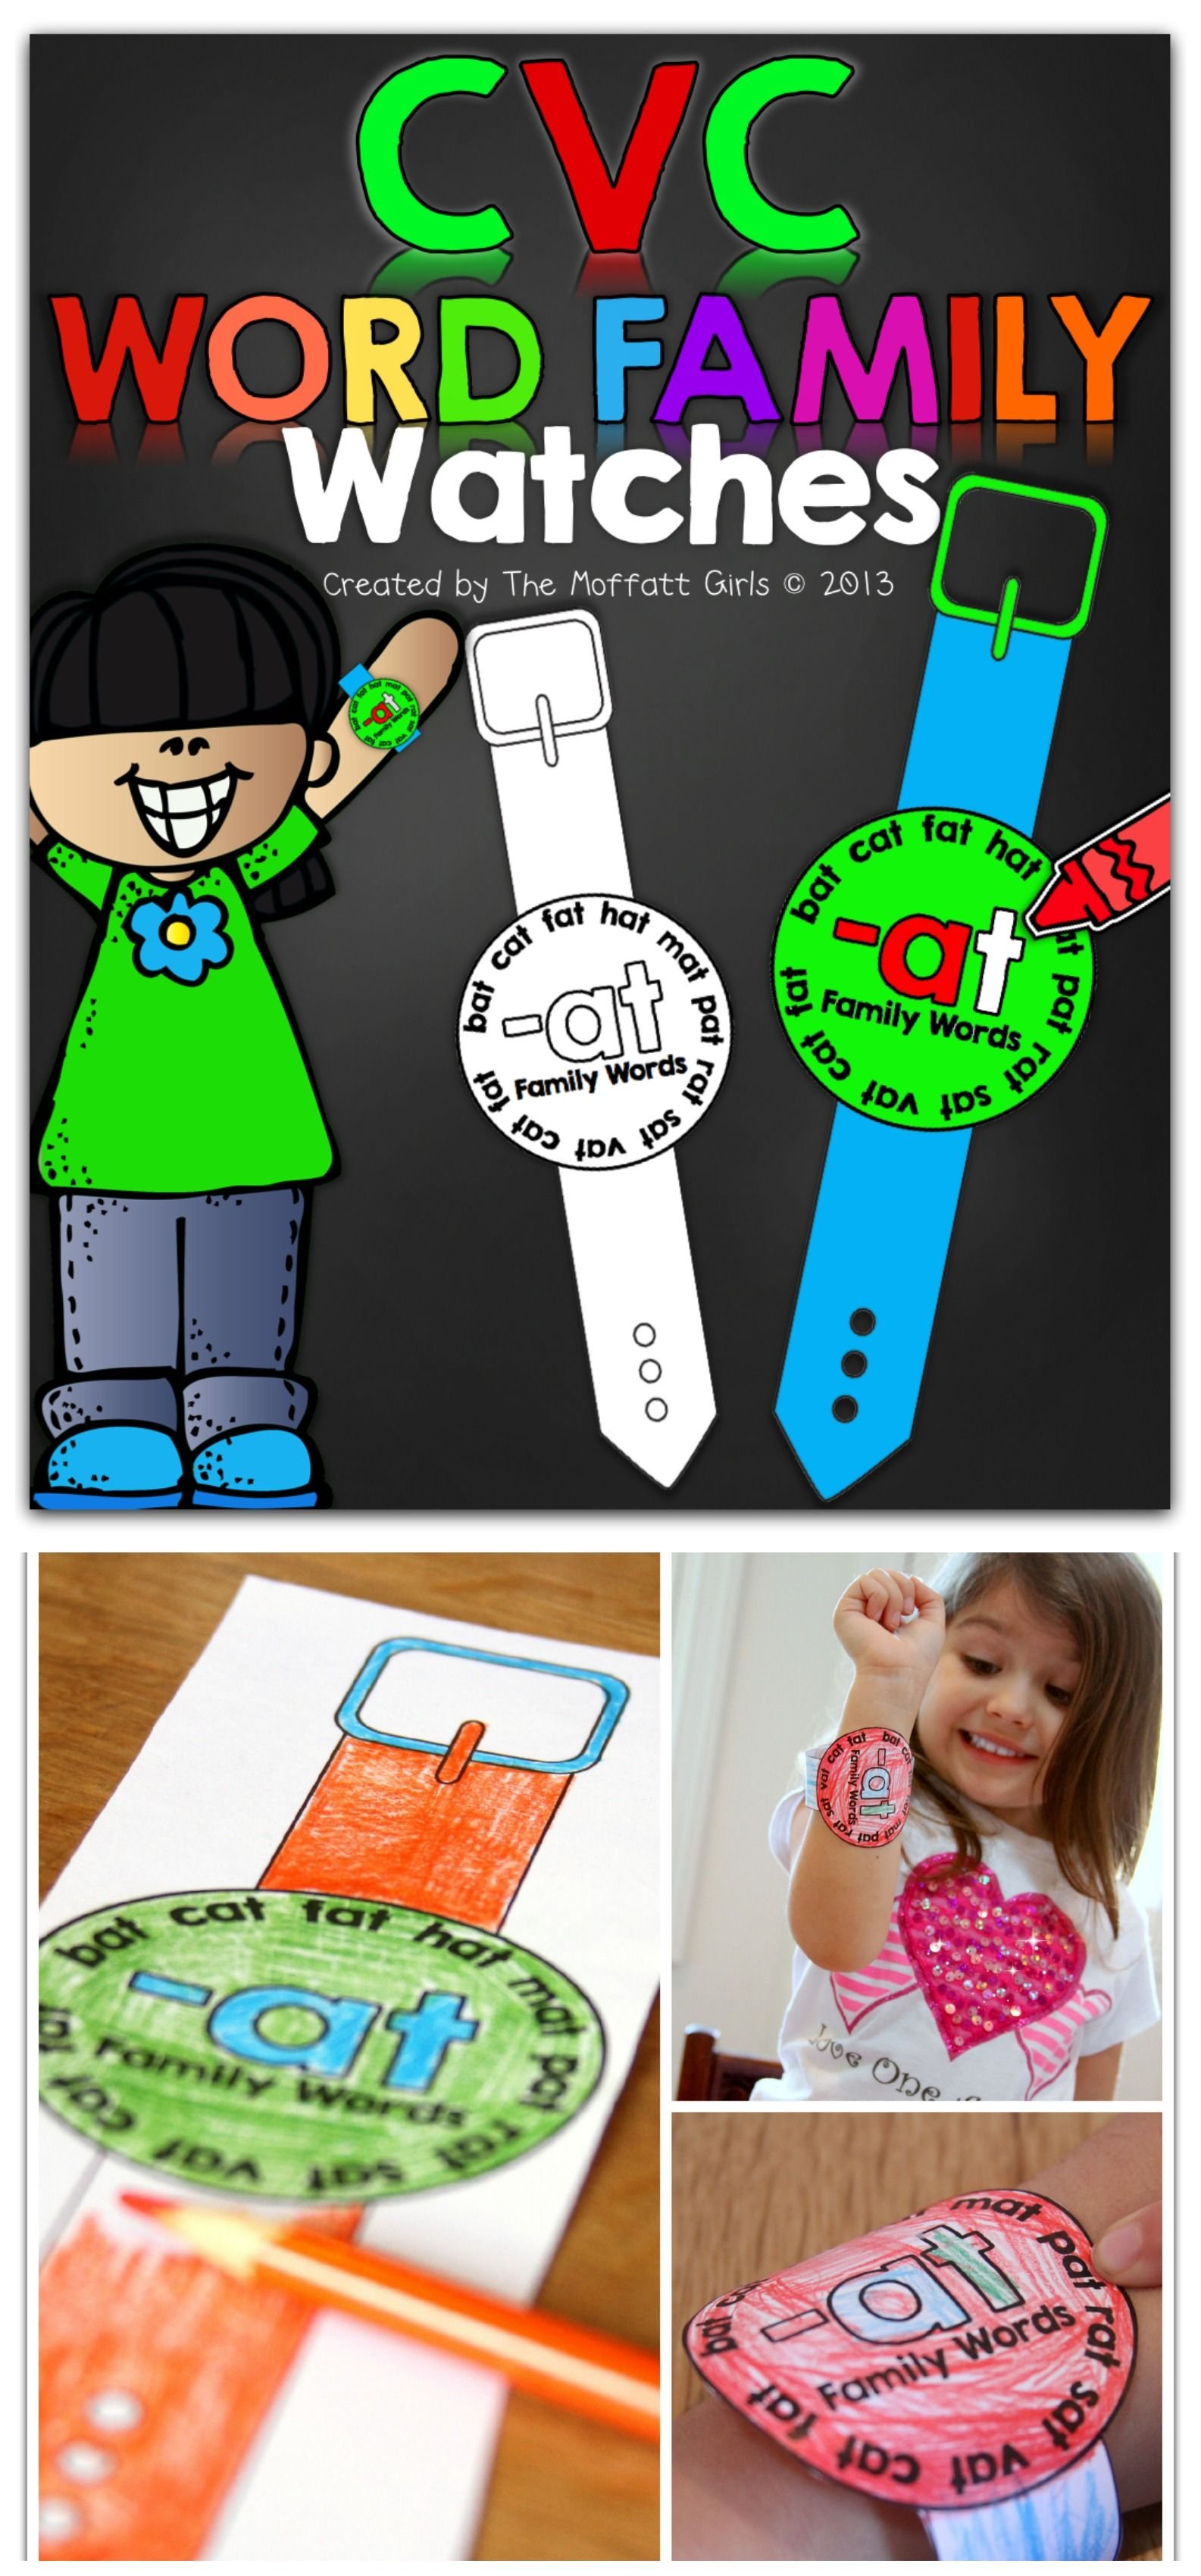 Cvc Word Family Watches Wearable Words Watches That Work